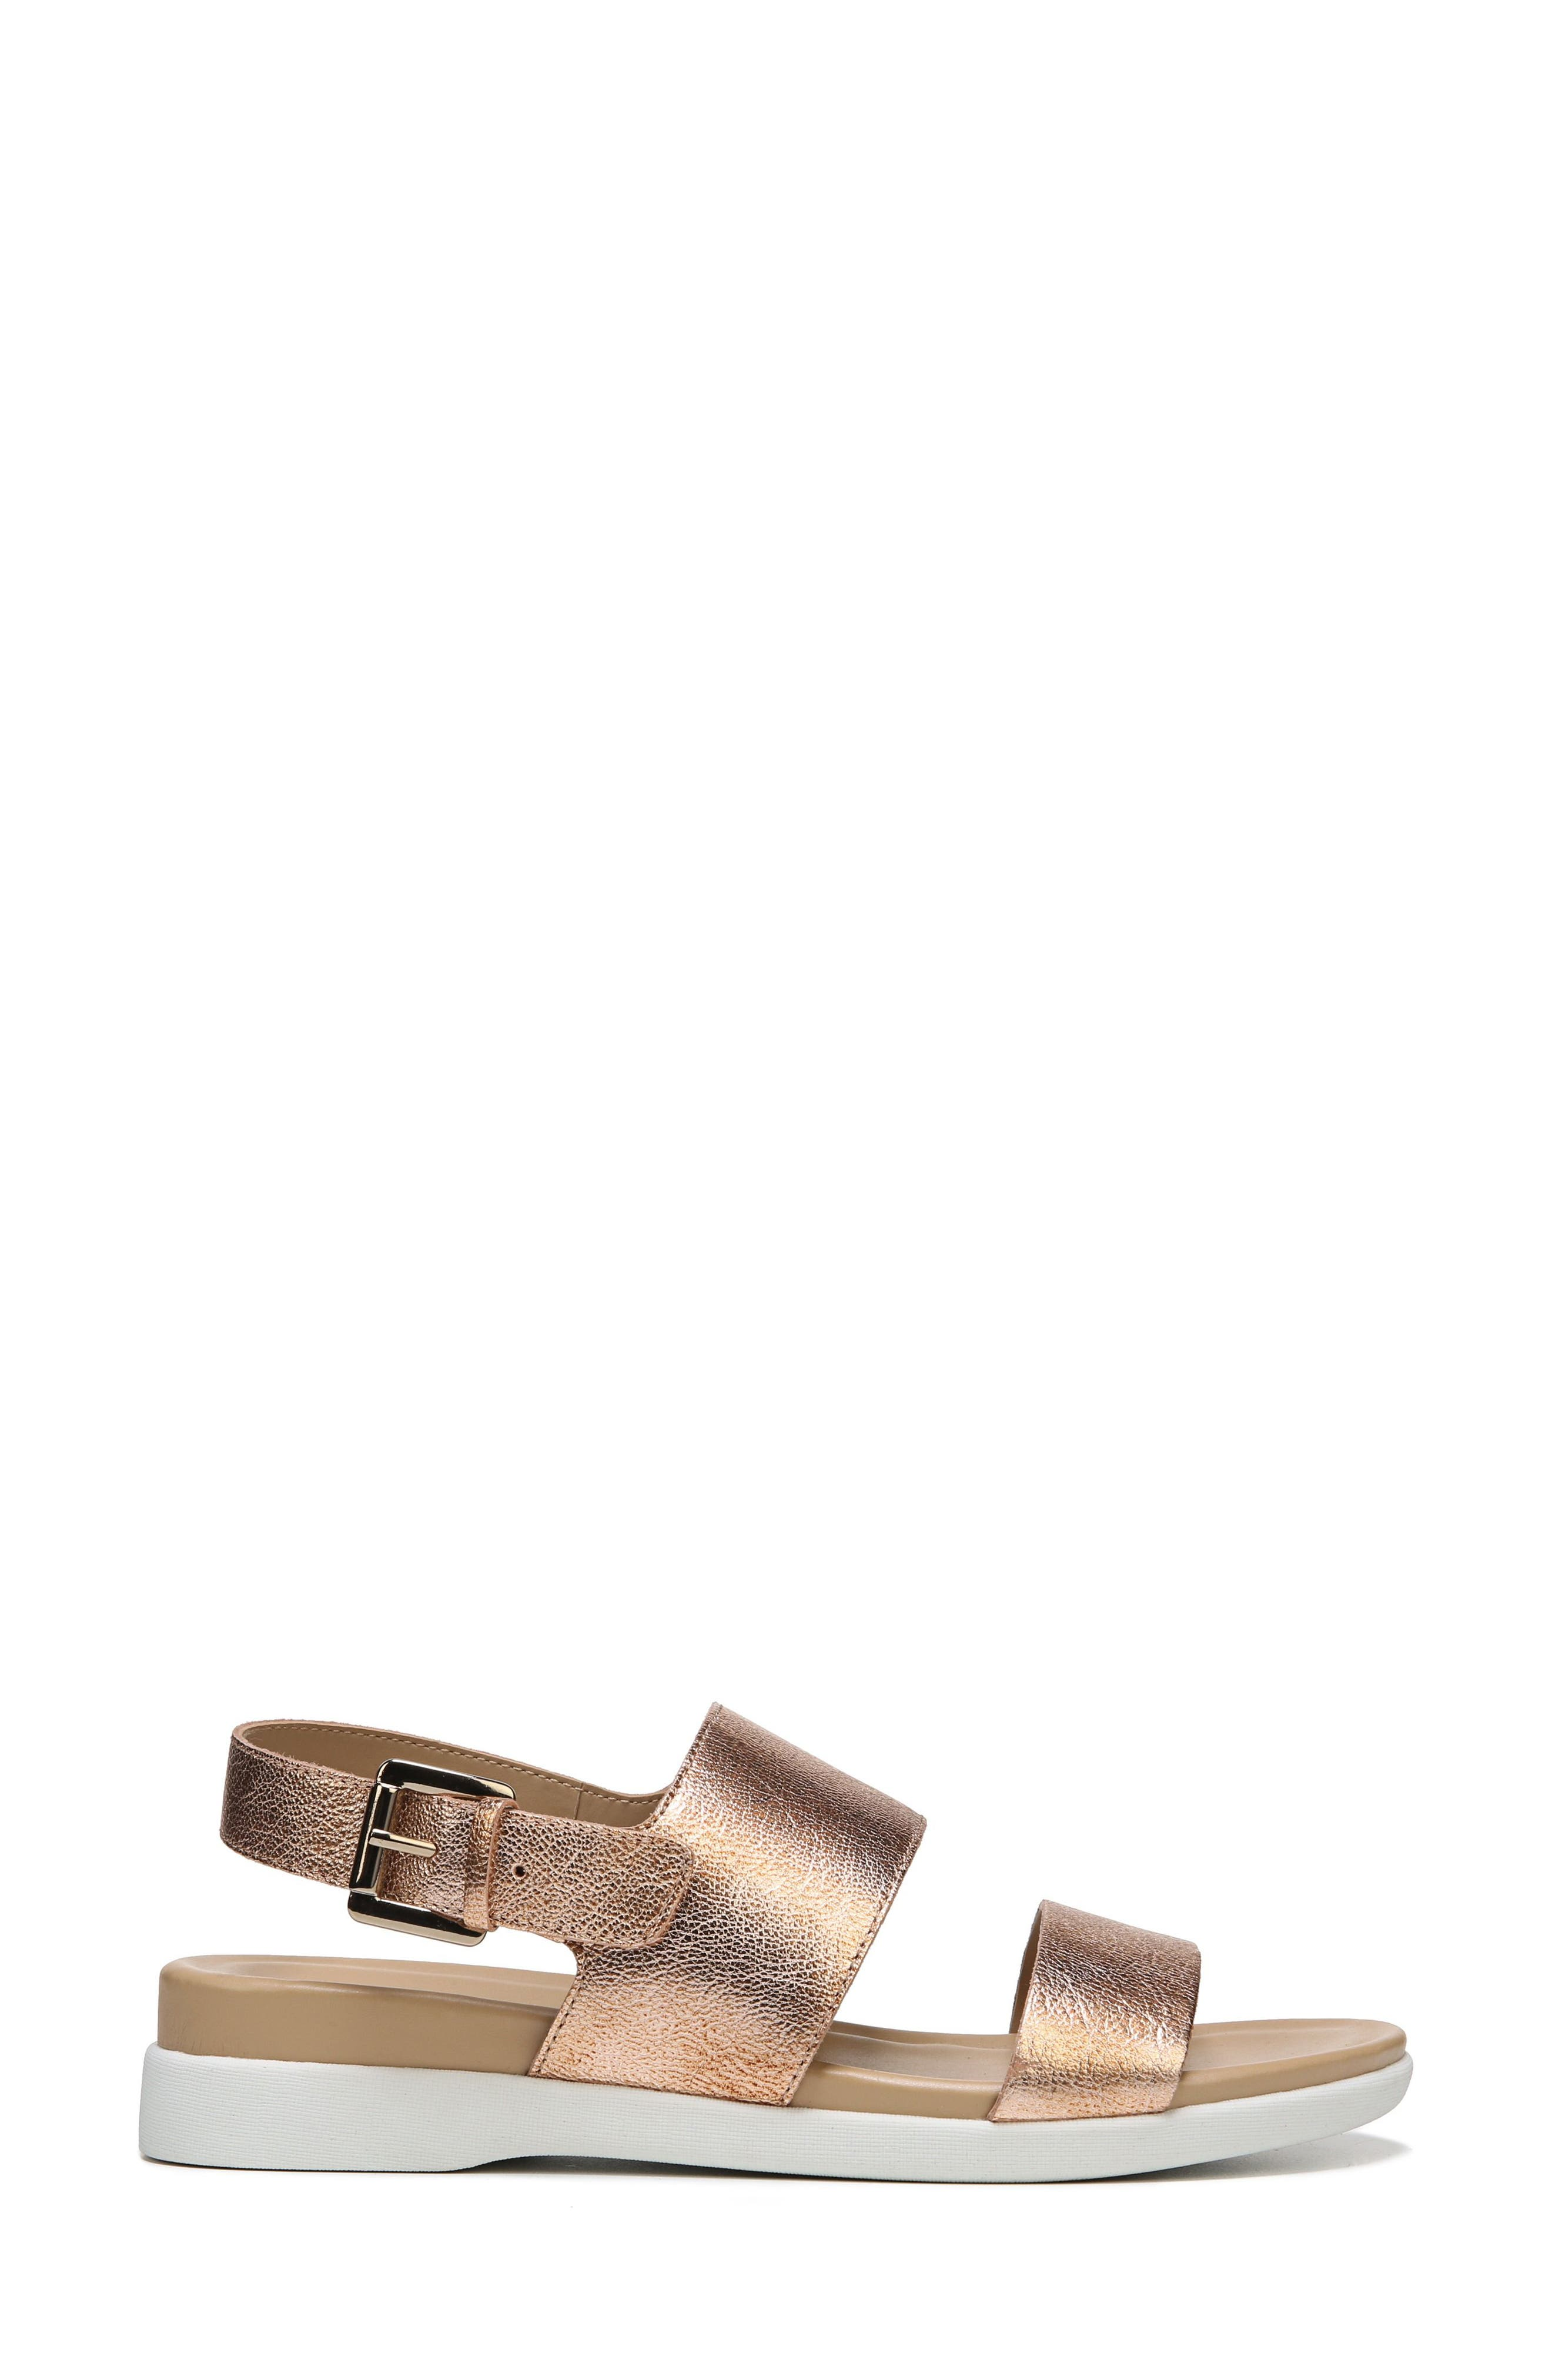 Emory Wedge Sandal,                             Alternate thumbnail 3, color,                             Copper Leather